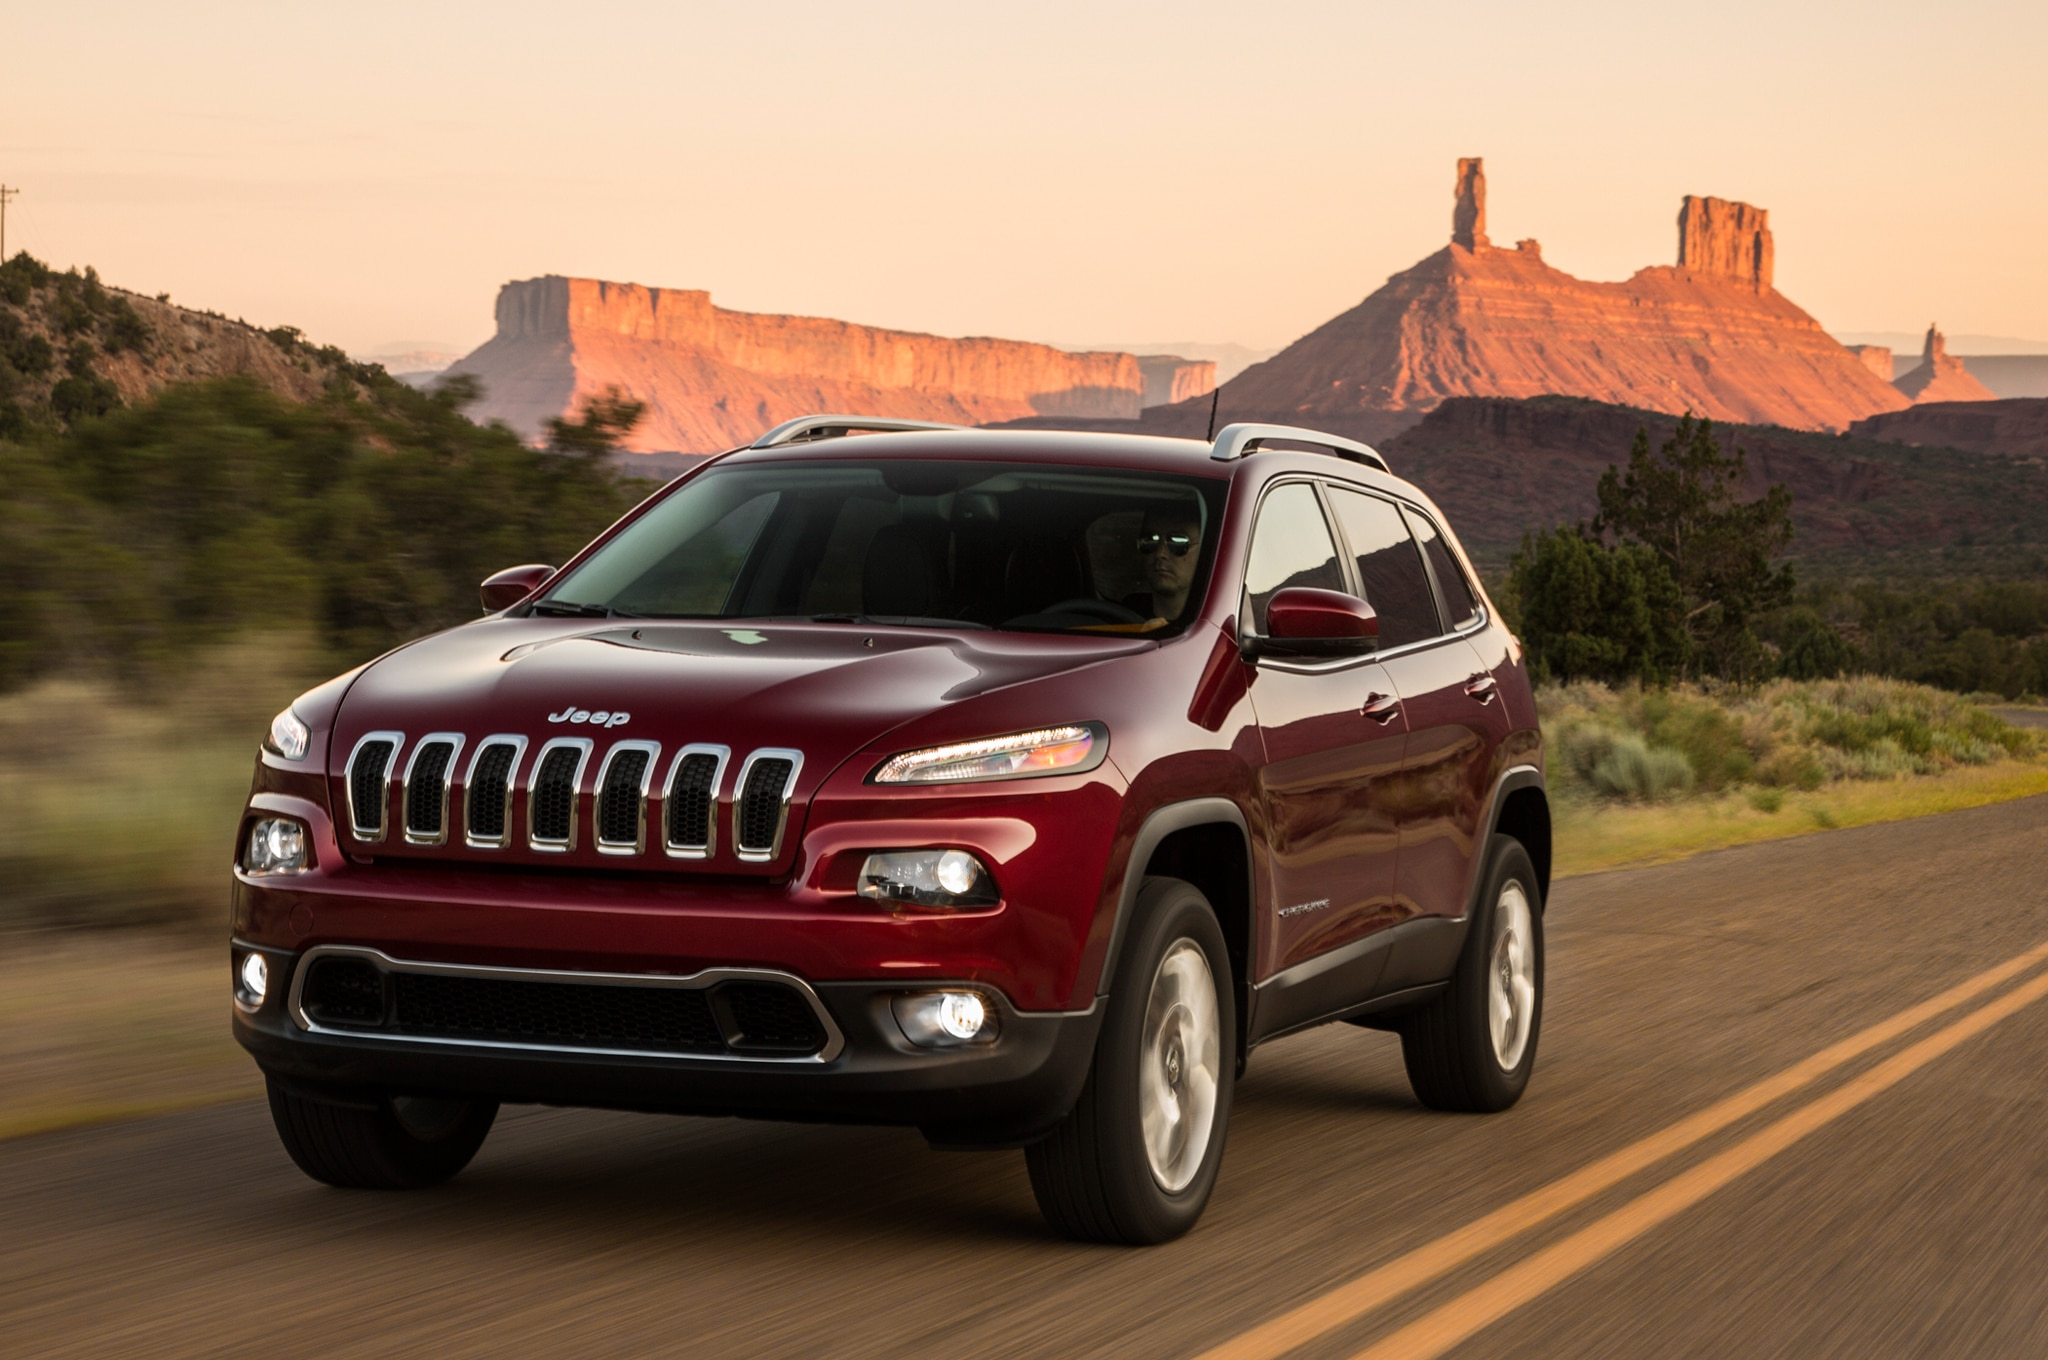 2014 Jeep Cherokee Limited Front View In Motion 011